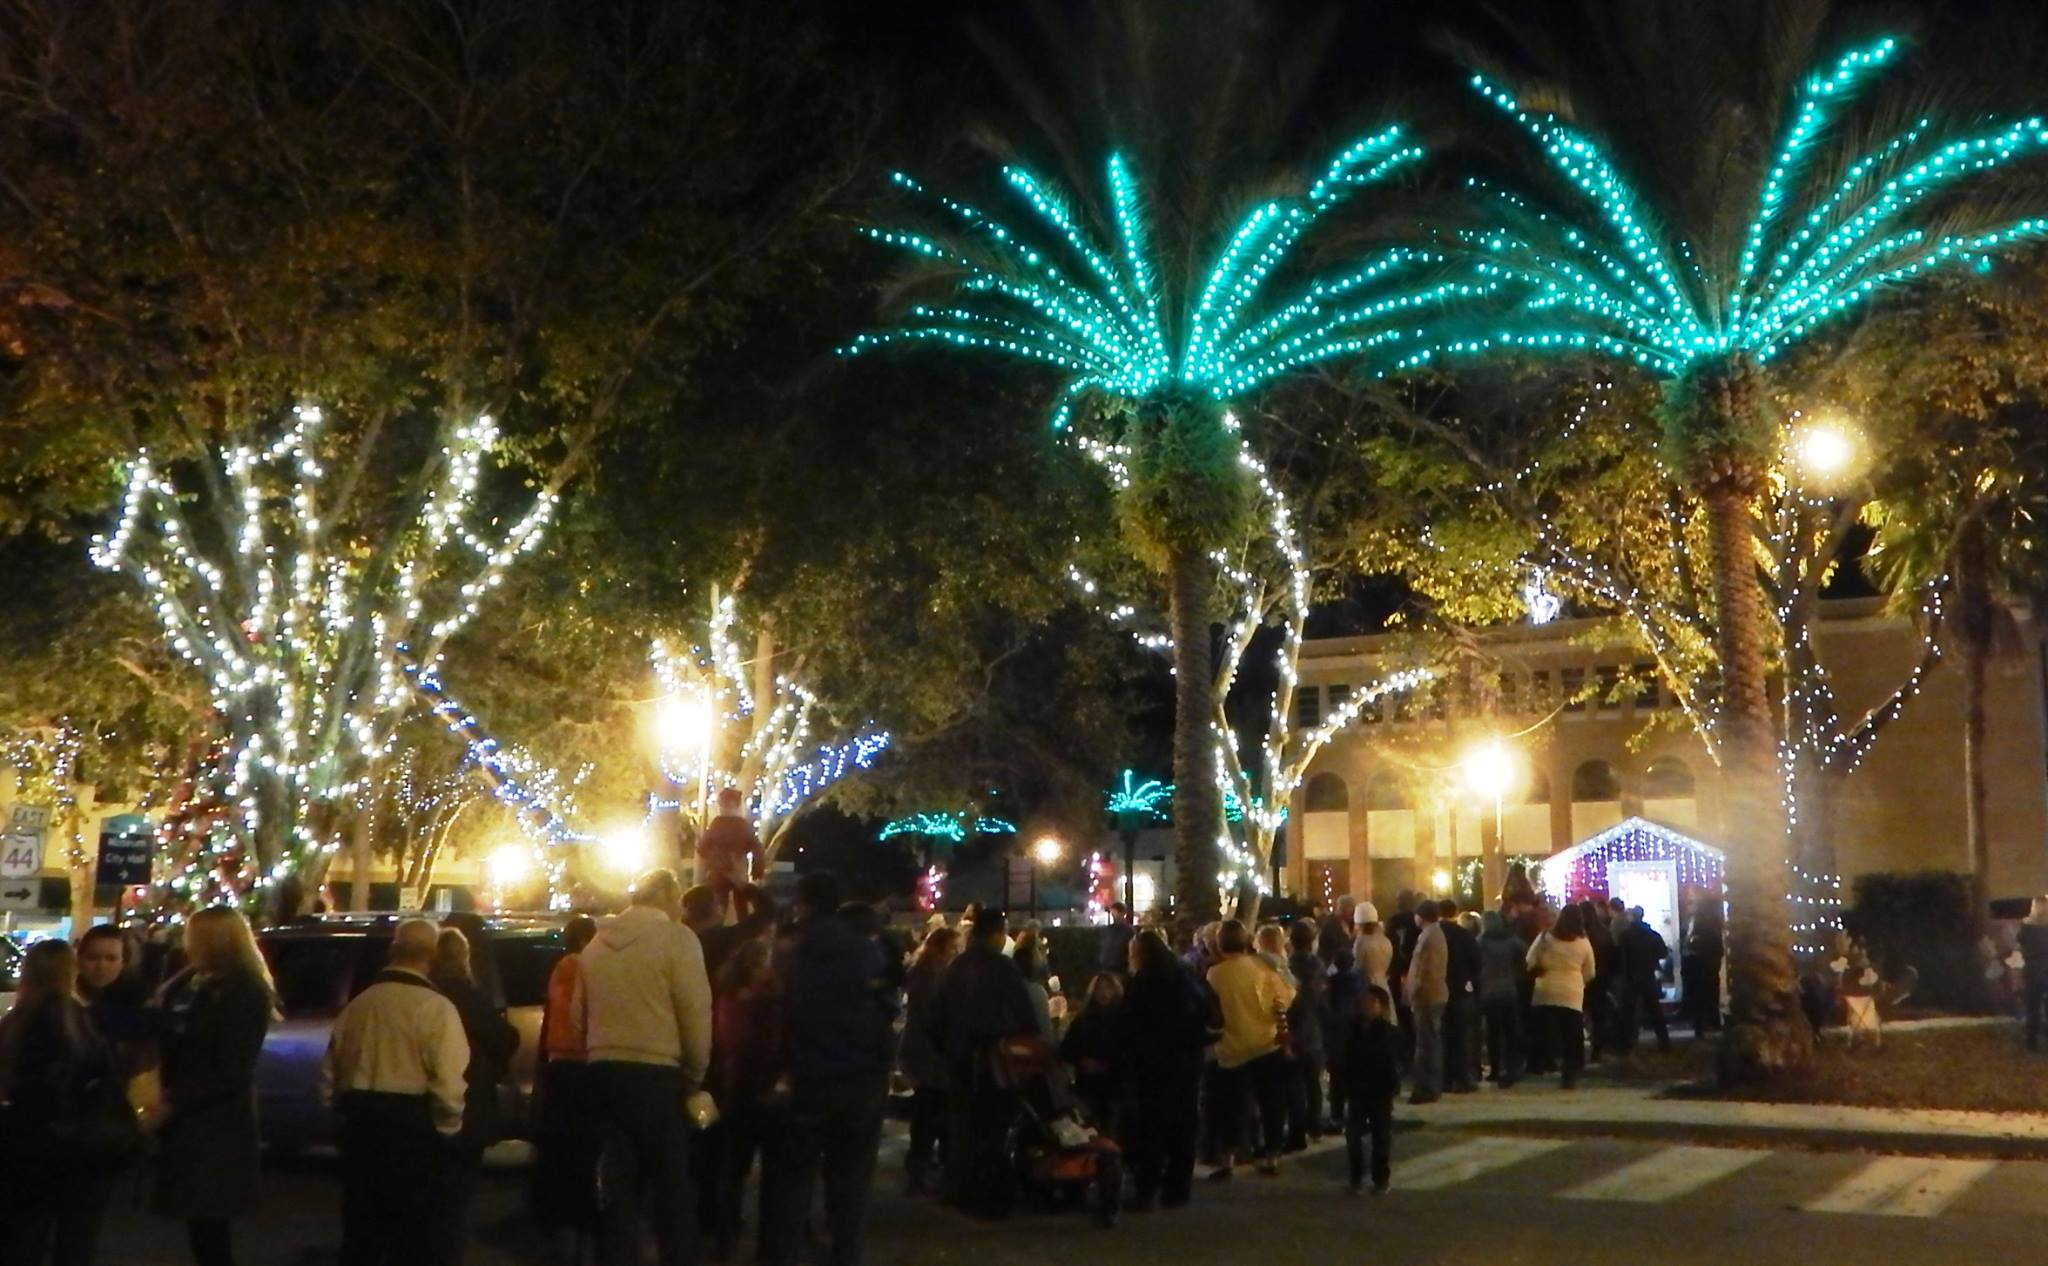 Tree Lighting Ceremony Live Entertainment Santa S Grand Entrance Make This Family Friendly Event The Kick Off Of Christmas On C Street In Our